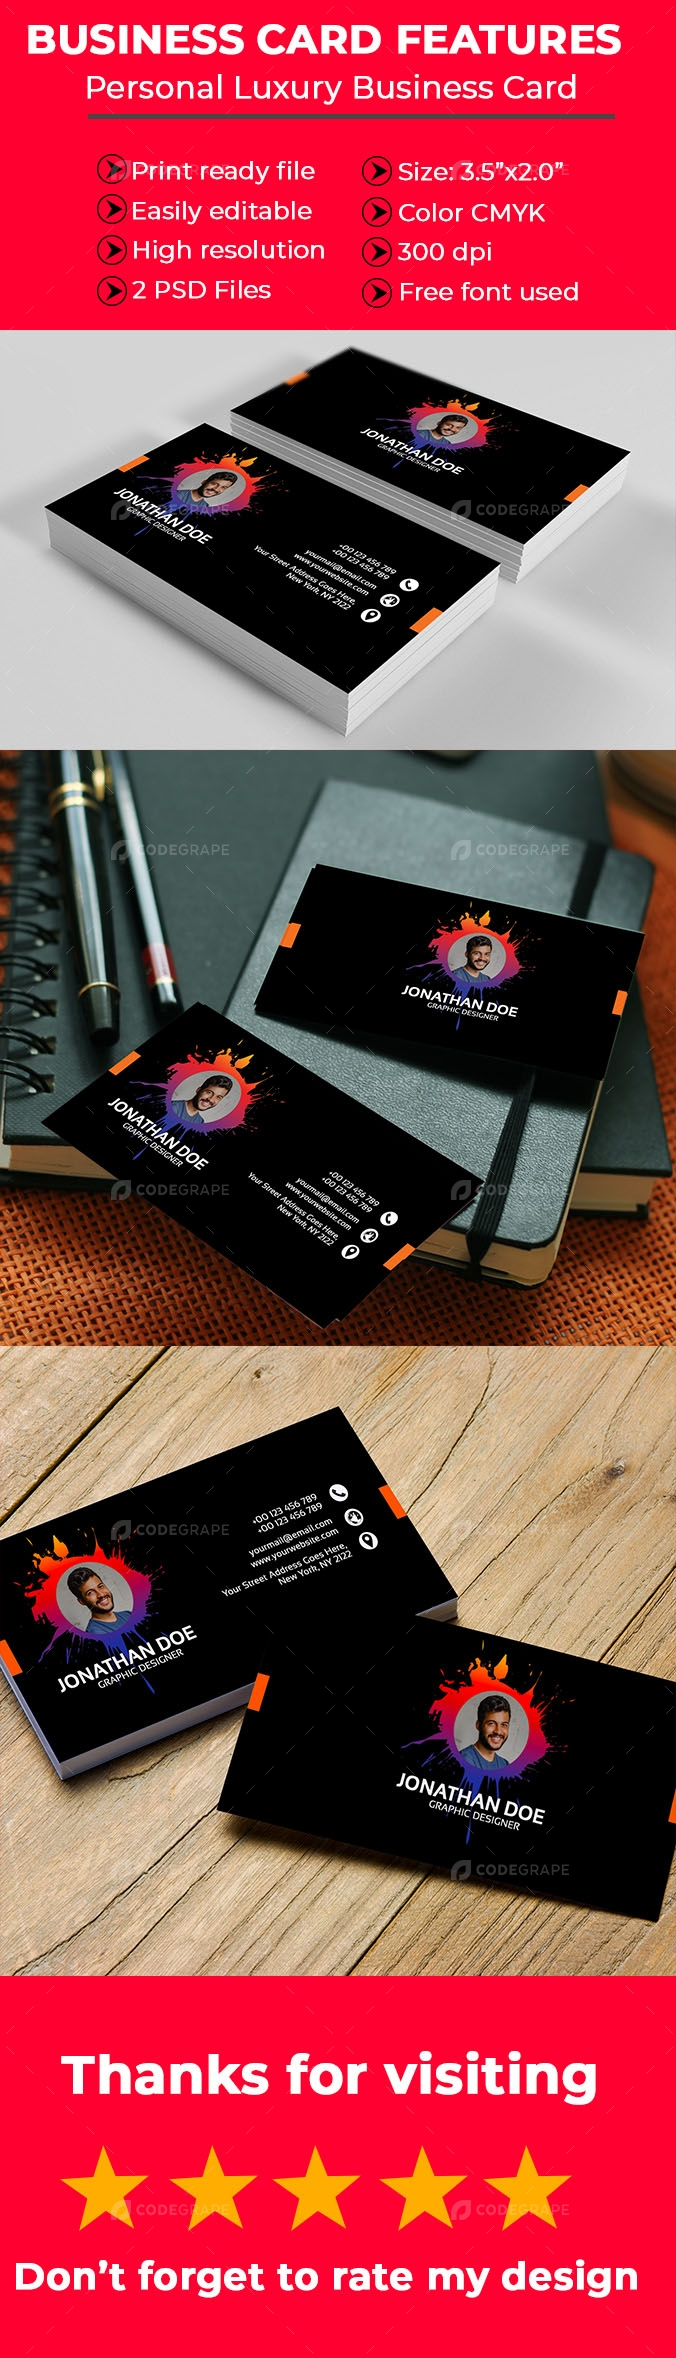 Personal Luxury Business Card